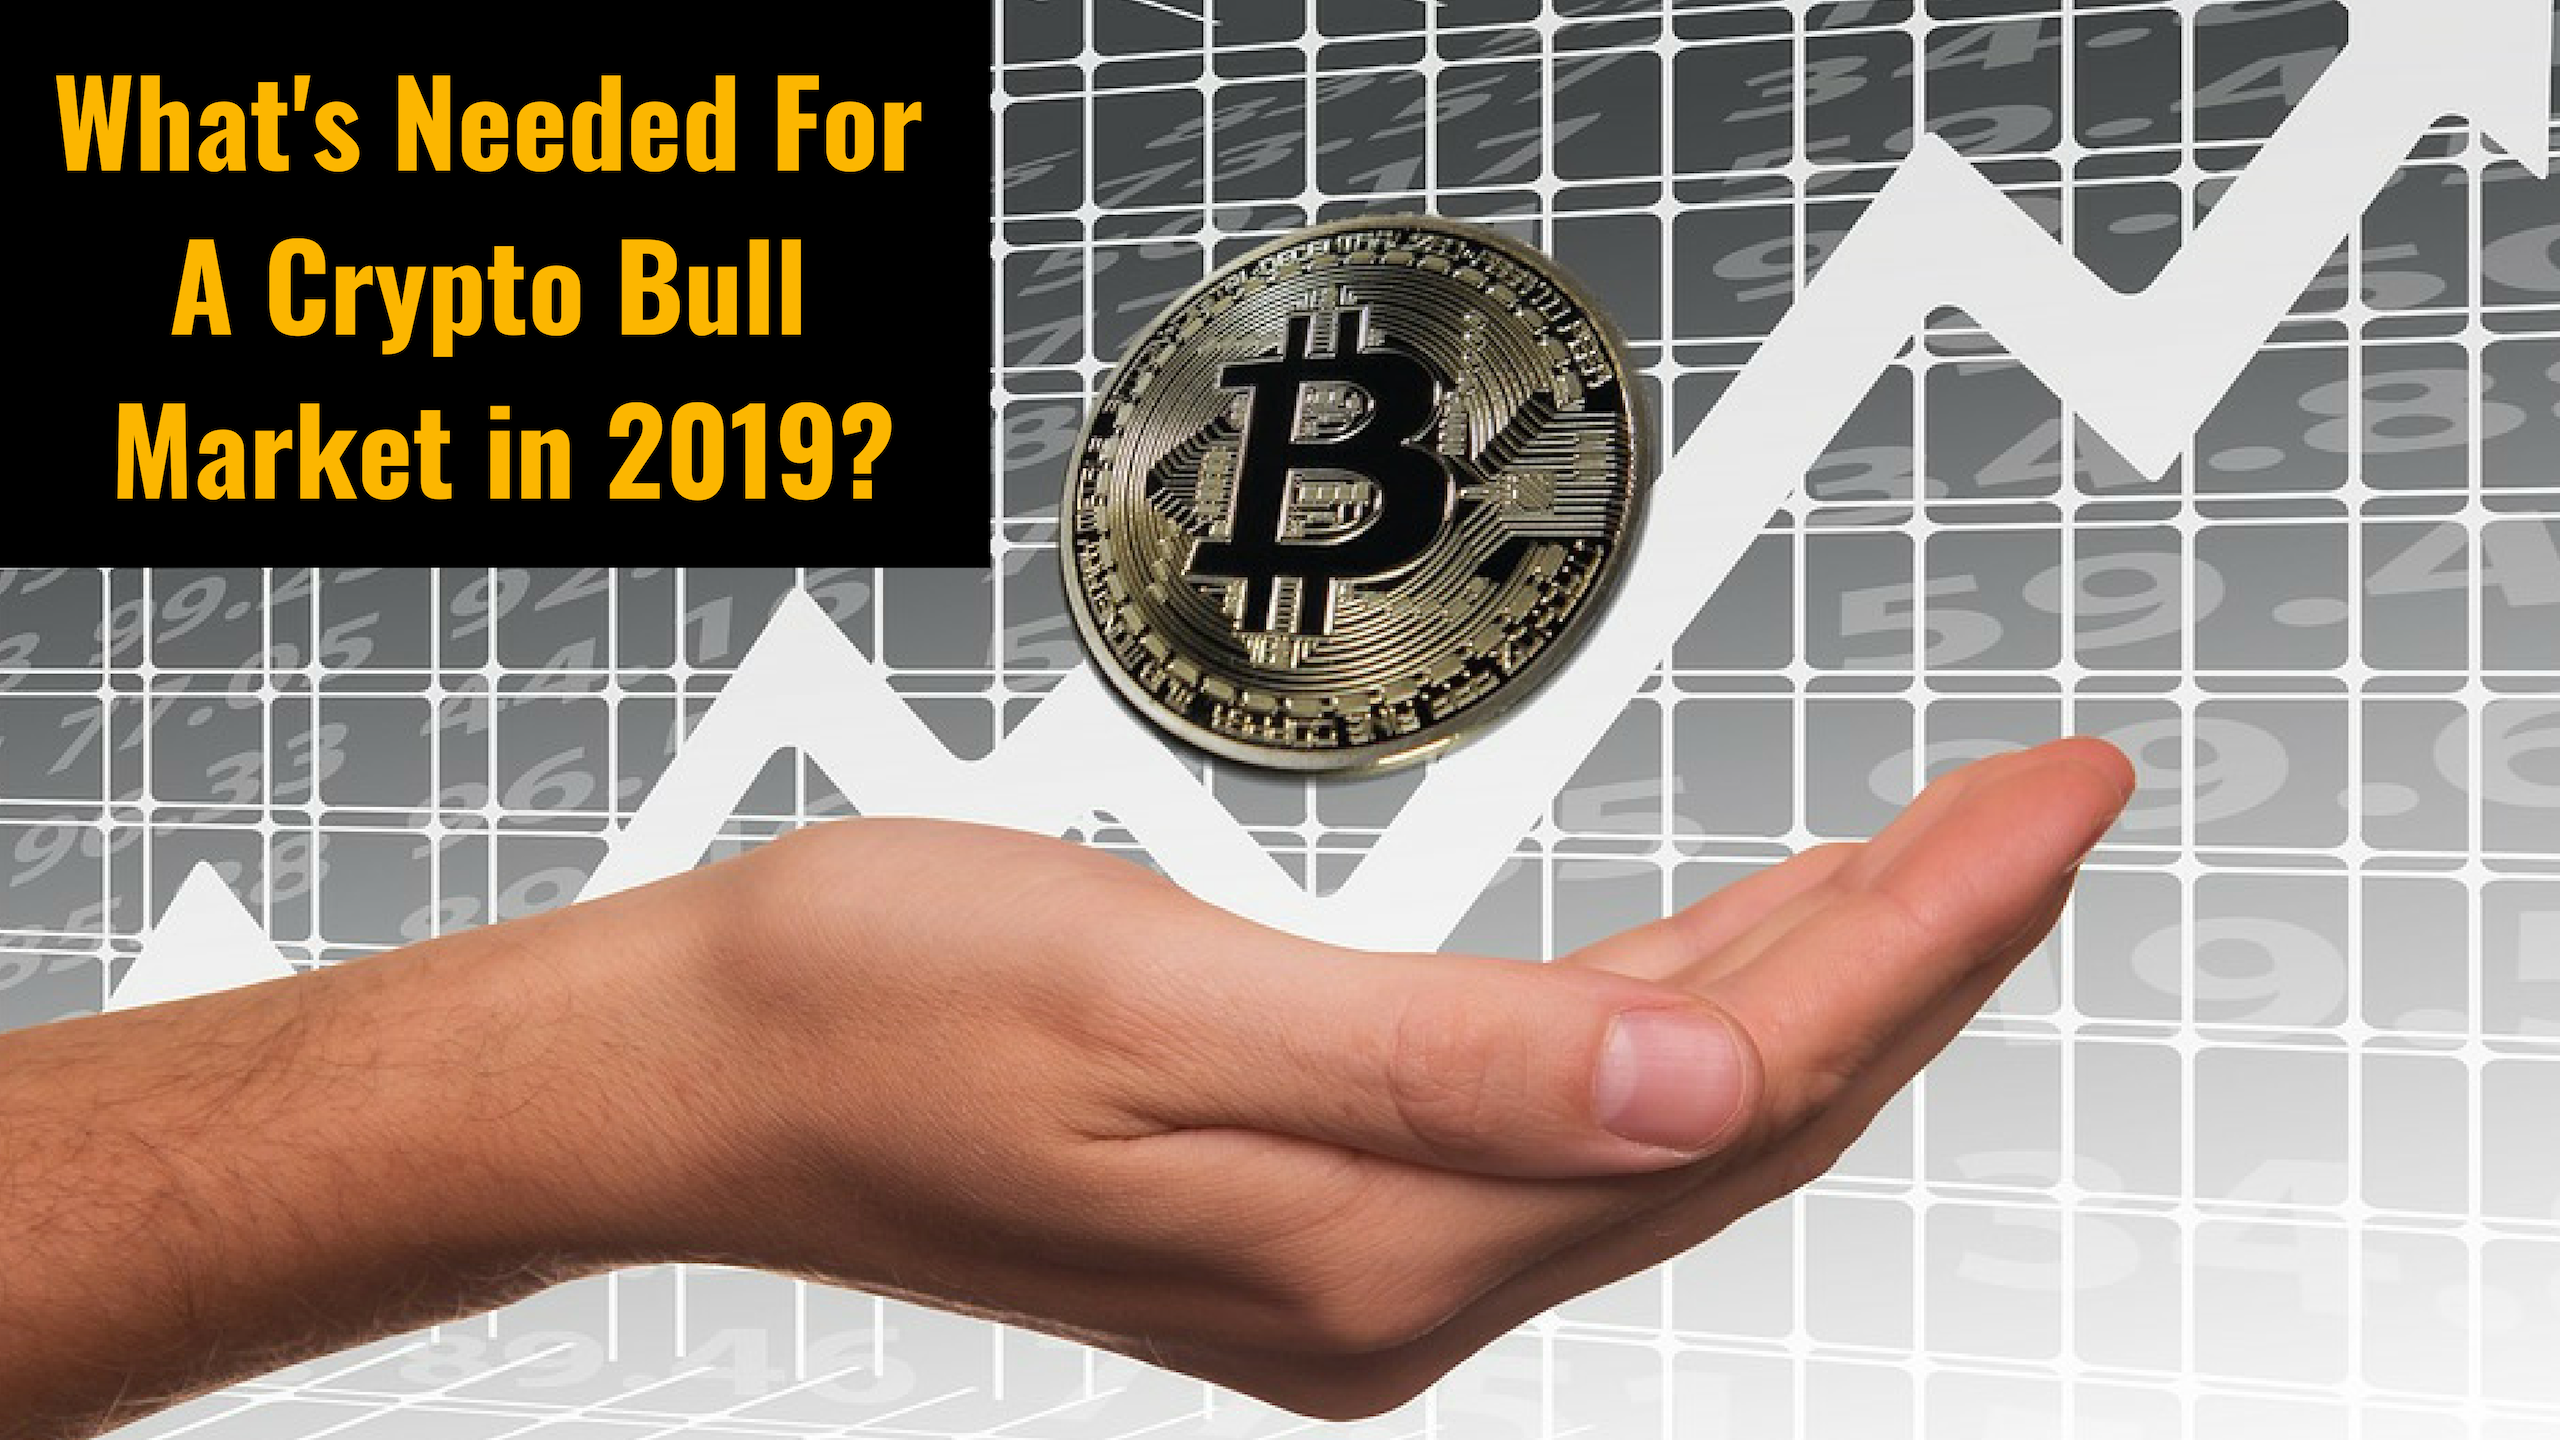 What's needed for a crypto bull market in 2019